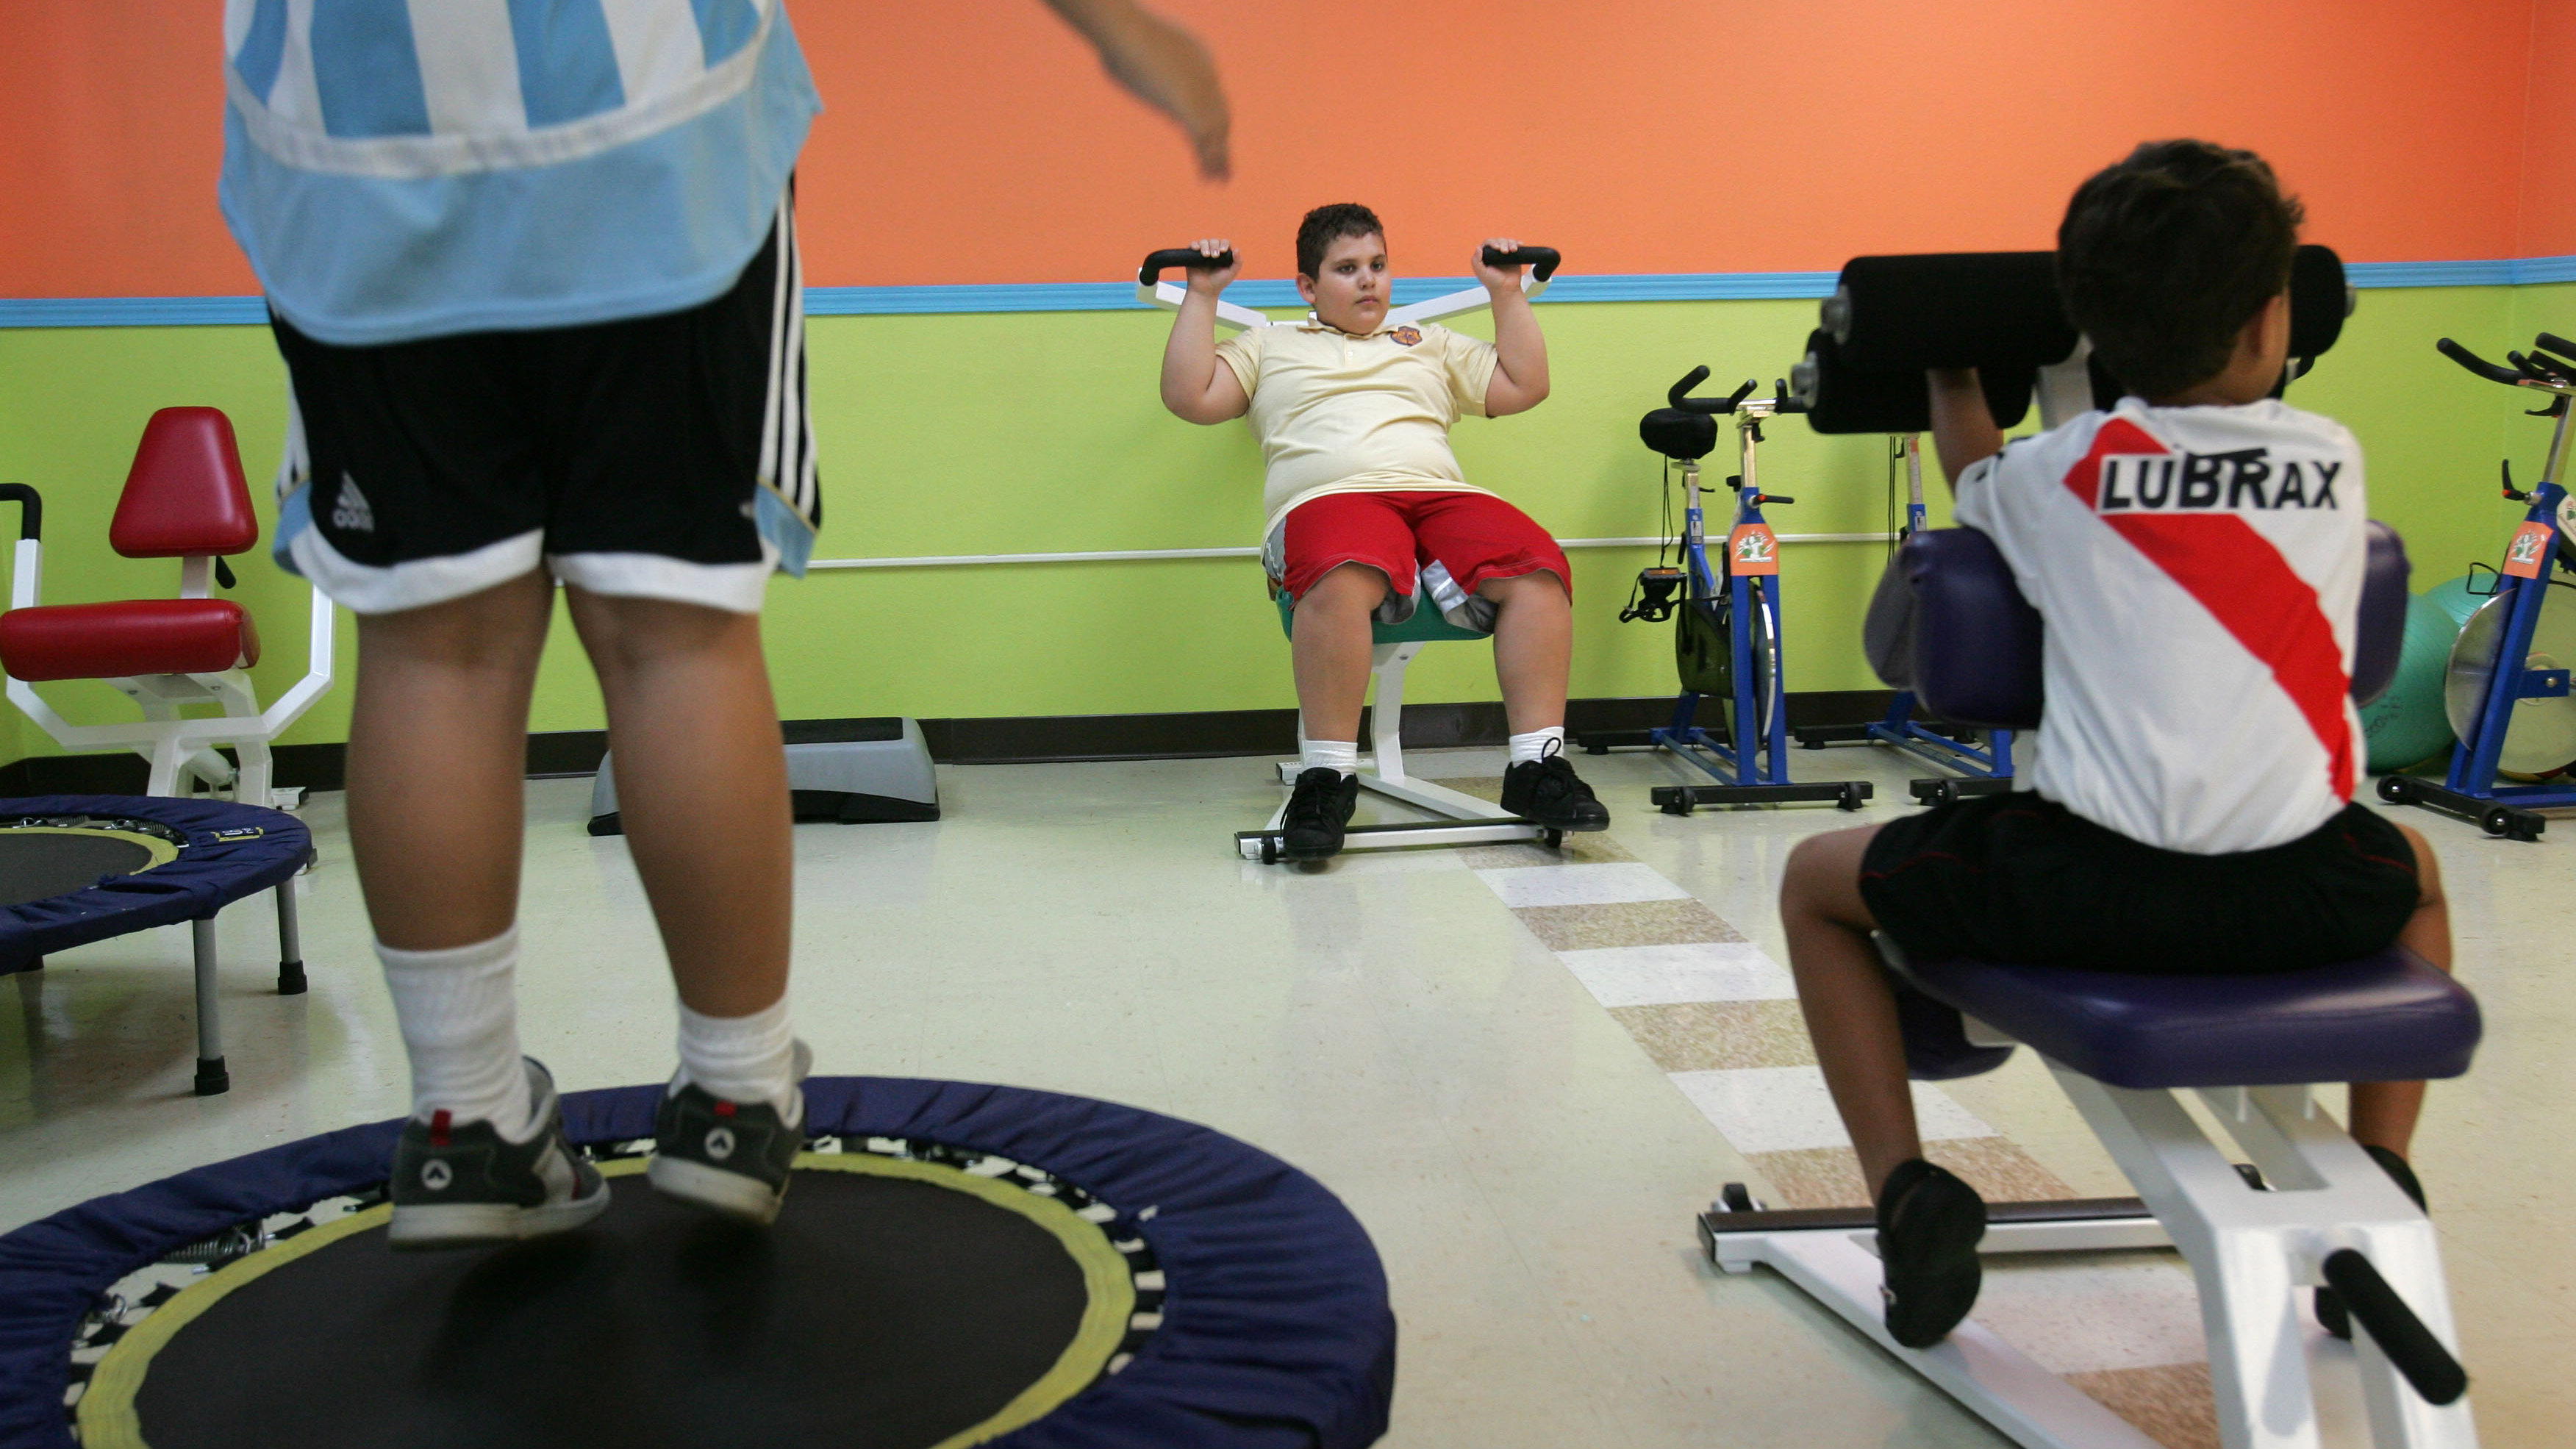 Puerto Rican boys exercise at a gym specialized in children's fitness in Guaynabo, Puerto Rico, April 20, 2007. Statistics point to a growing generation of Puerto Rican children struggling with obesity and related diseases, once rarely seen among such young people. The problem is worse here than on the U.S. mainland: Studies show 26 percent of youngsters are obese, compared to 18 percent on the U.S. mainland.